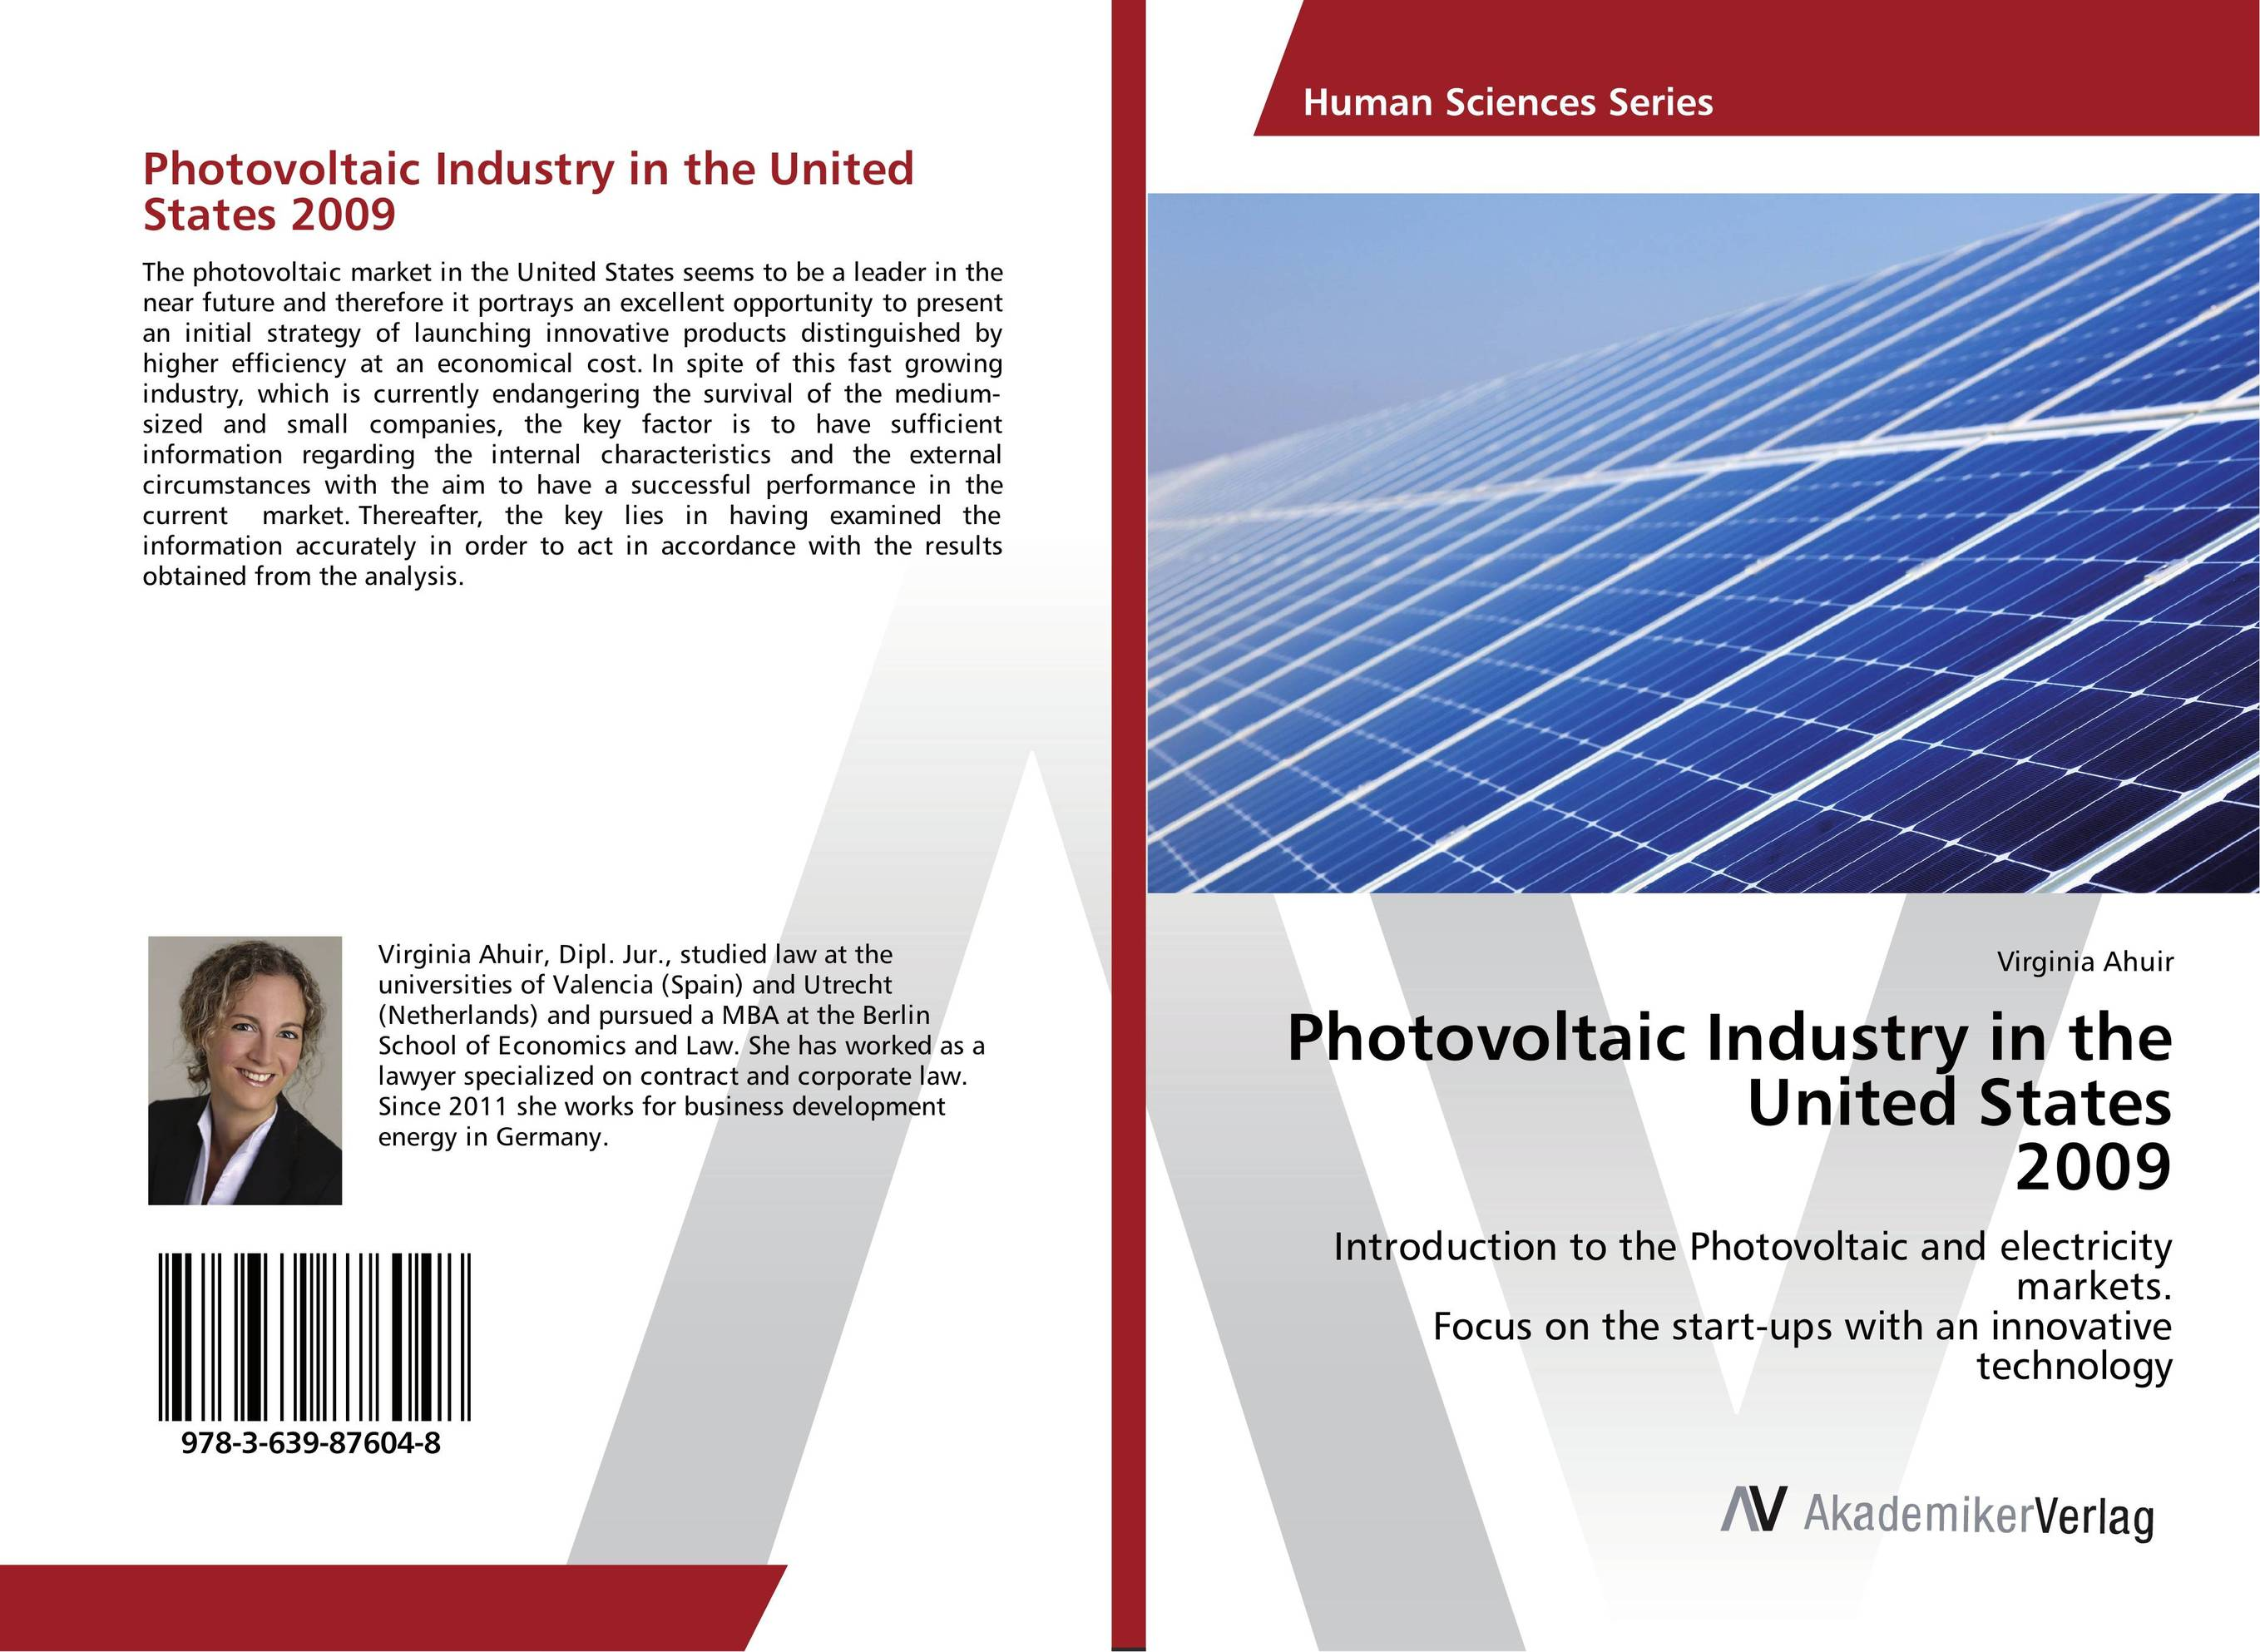 Photovoltaic Industry in the United States 2009